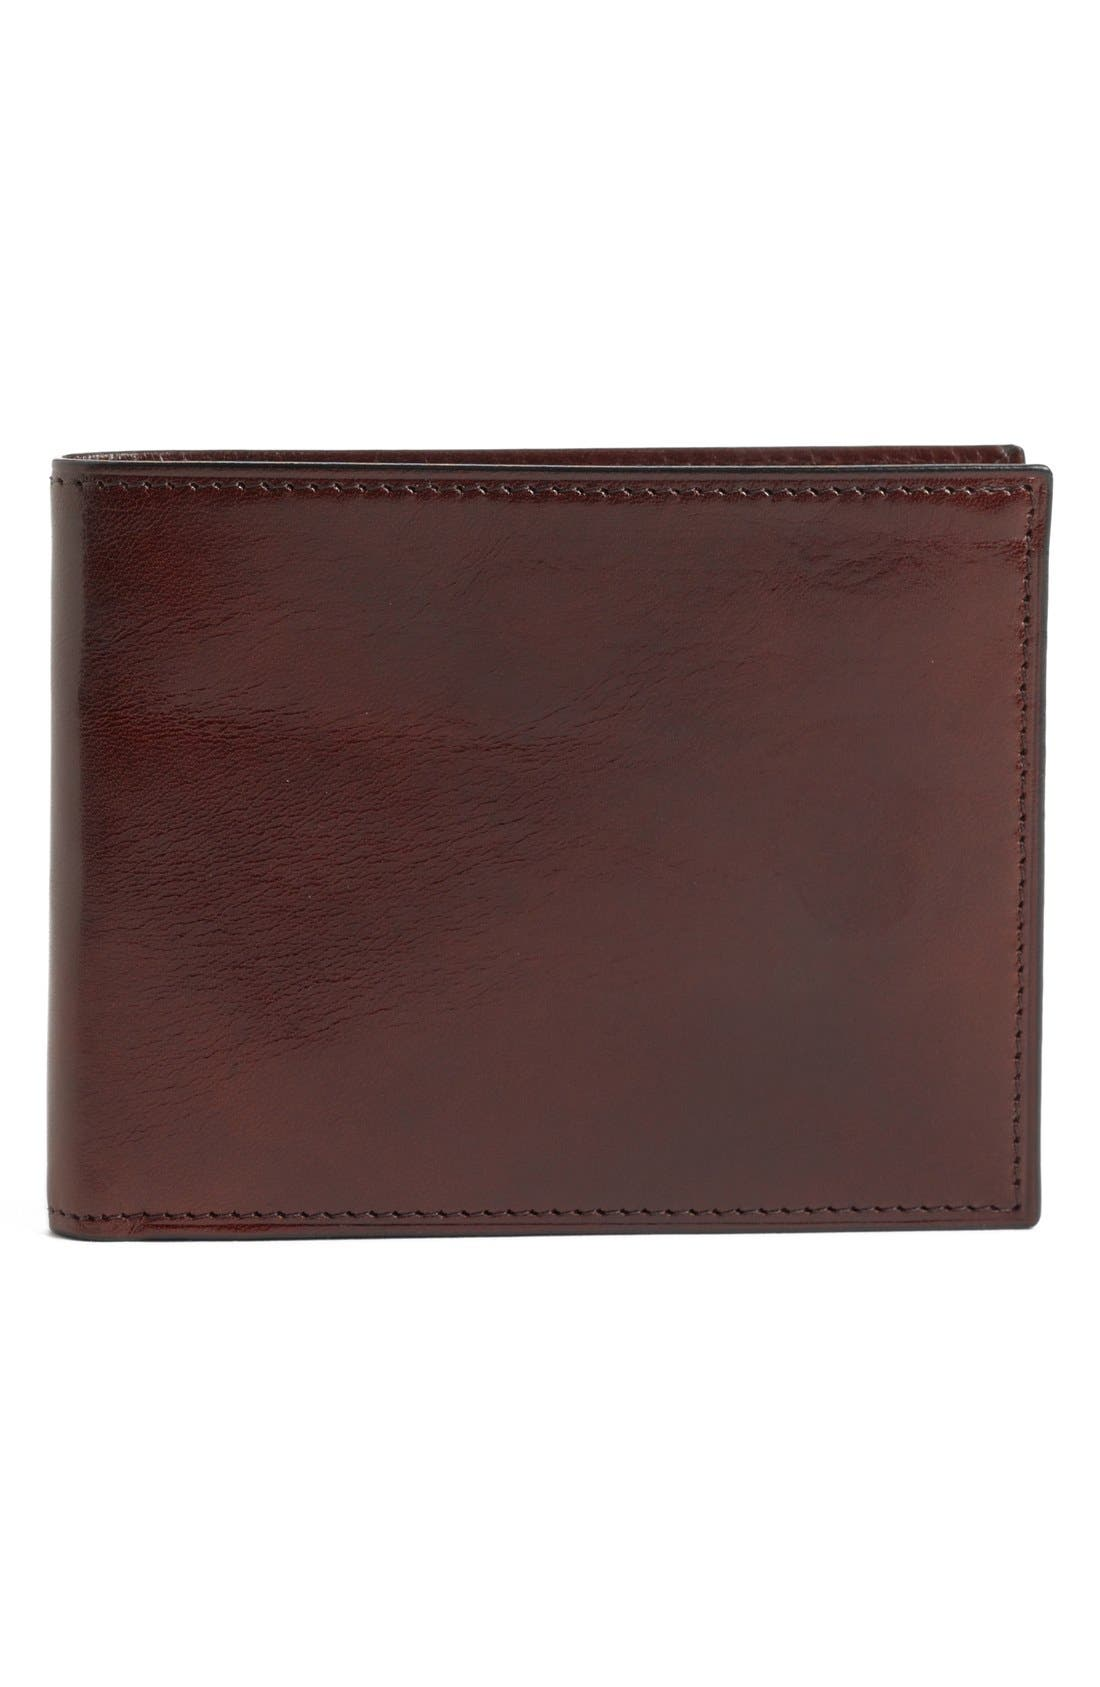 Main Image - Bosca 'Old Leather' L-Fold Wallet